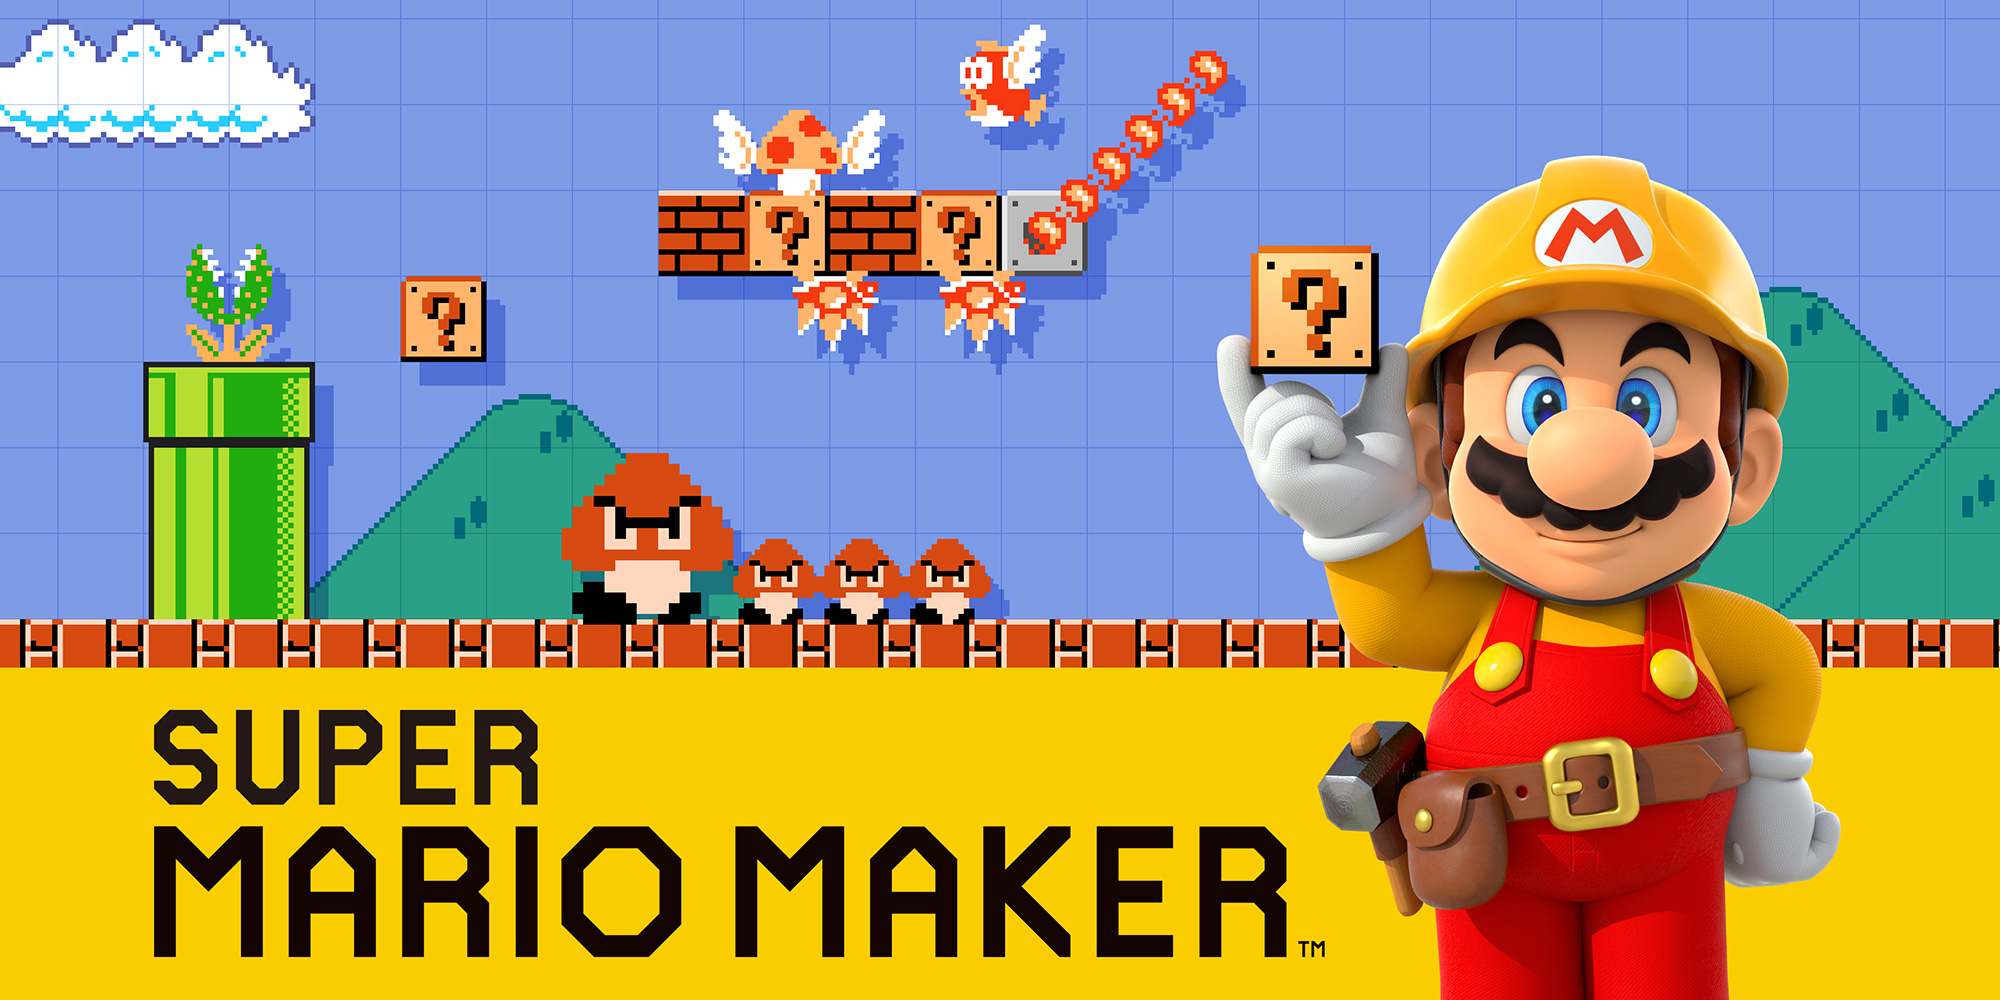 http://cdn02.nintendo-europe.com/media/images/10_share_images/games_15/wiiu_14/SI_WiiU_SuperMarioMaker_v01.jpg